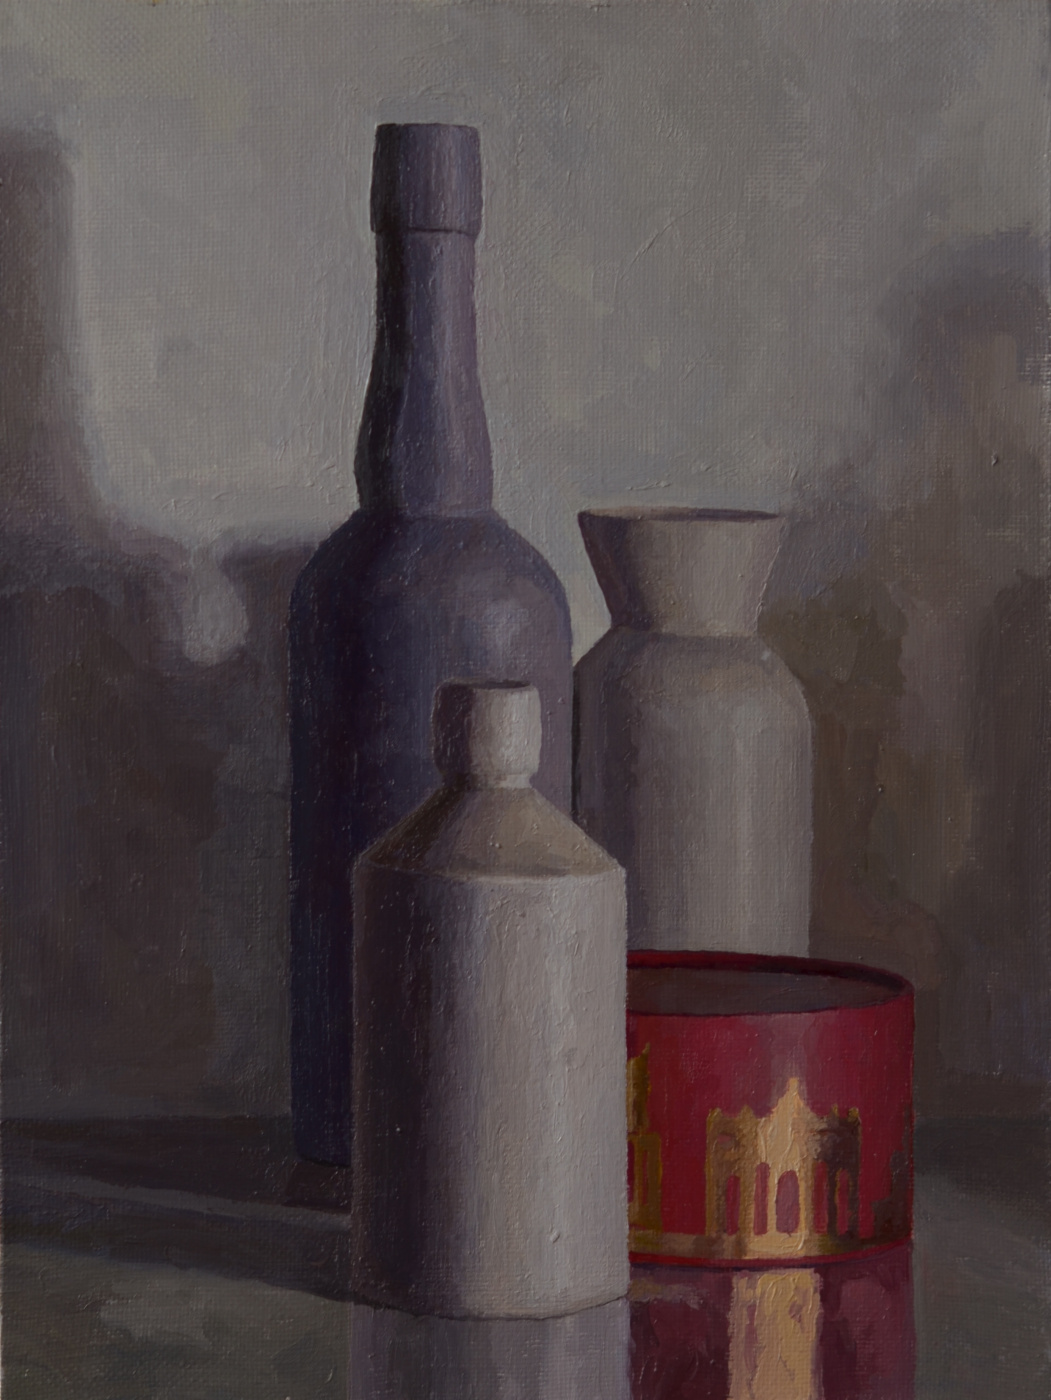 Pavel Viktorovich Petrov. Still life with bottles and red box